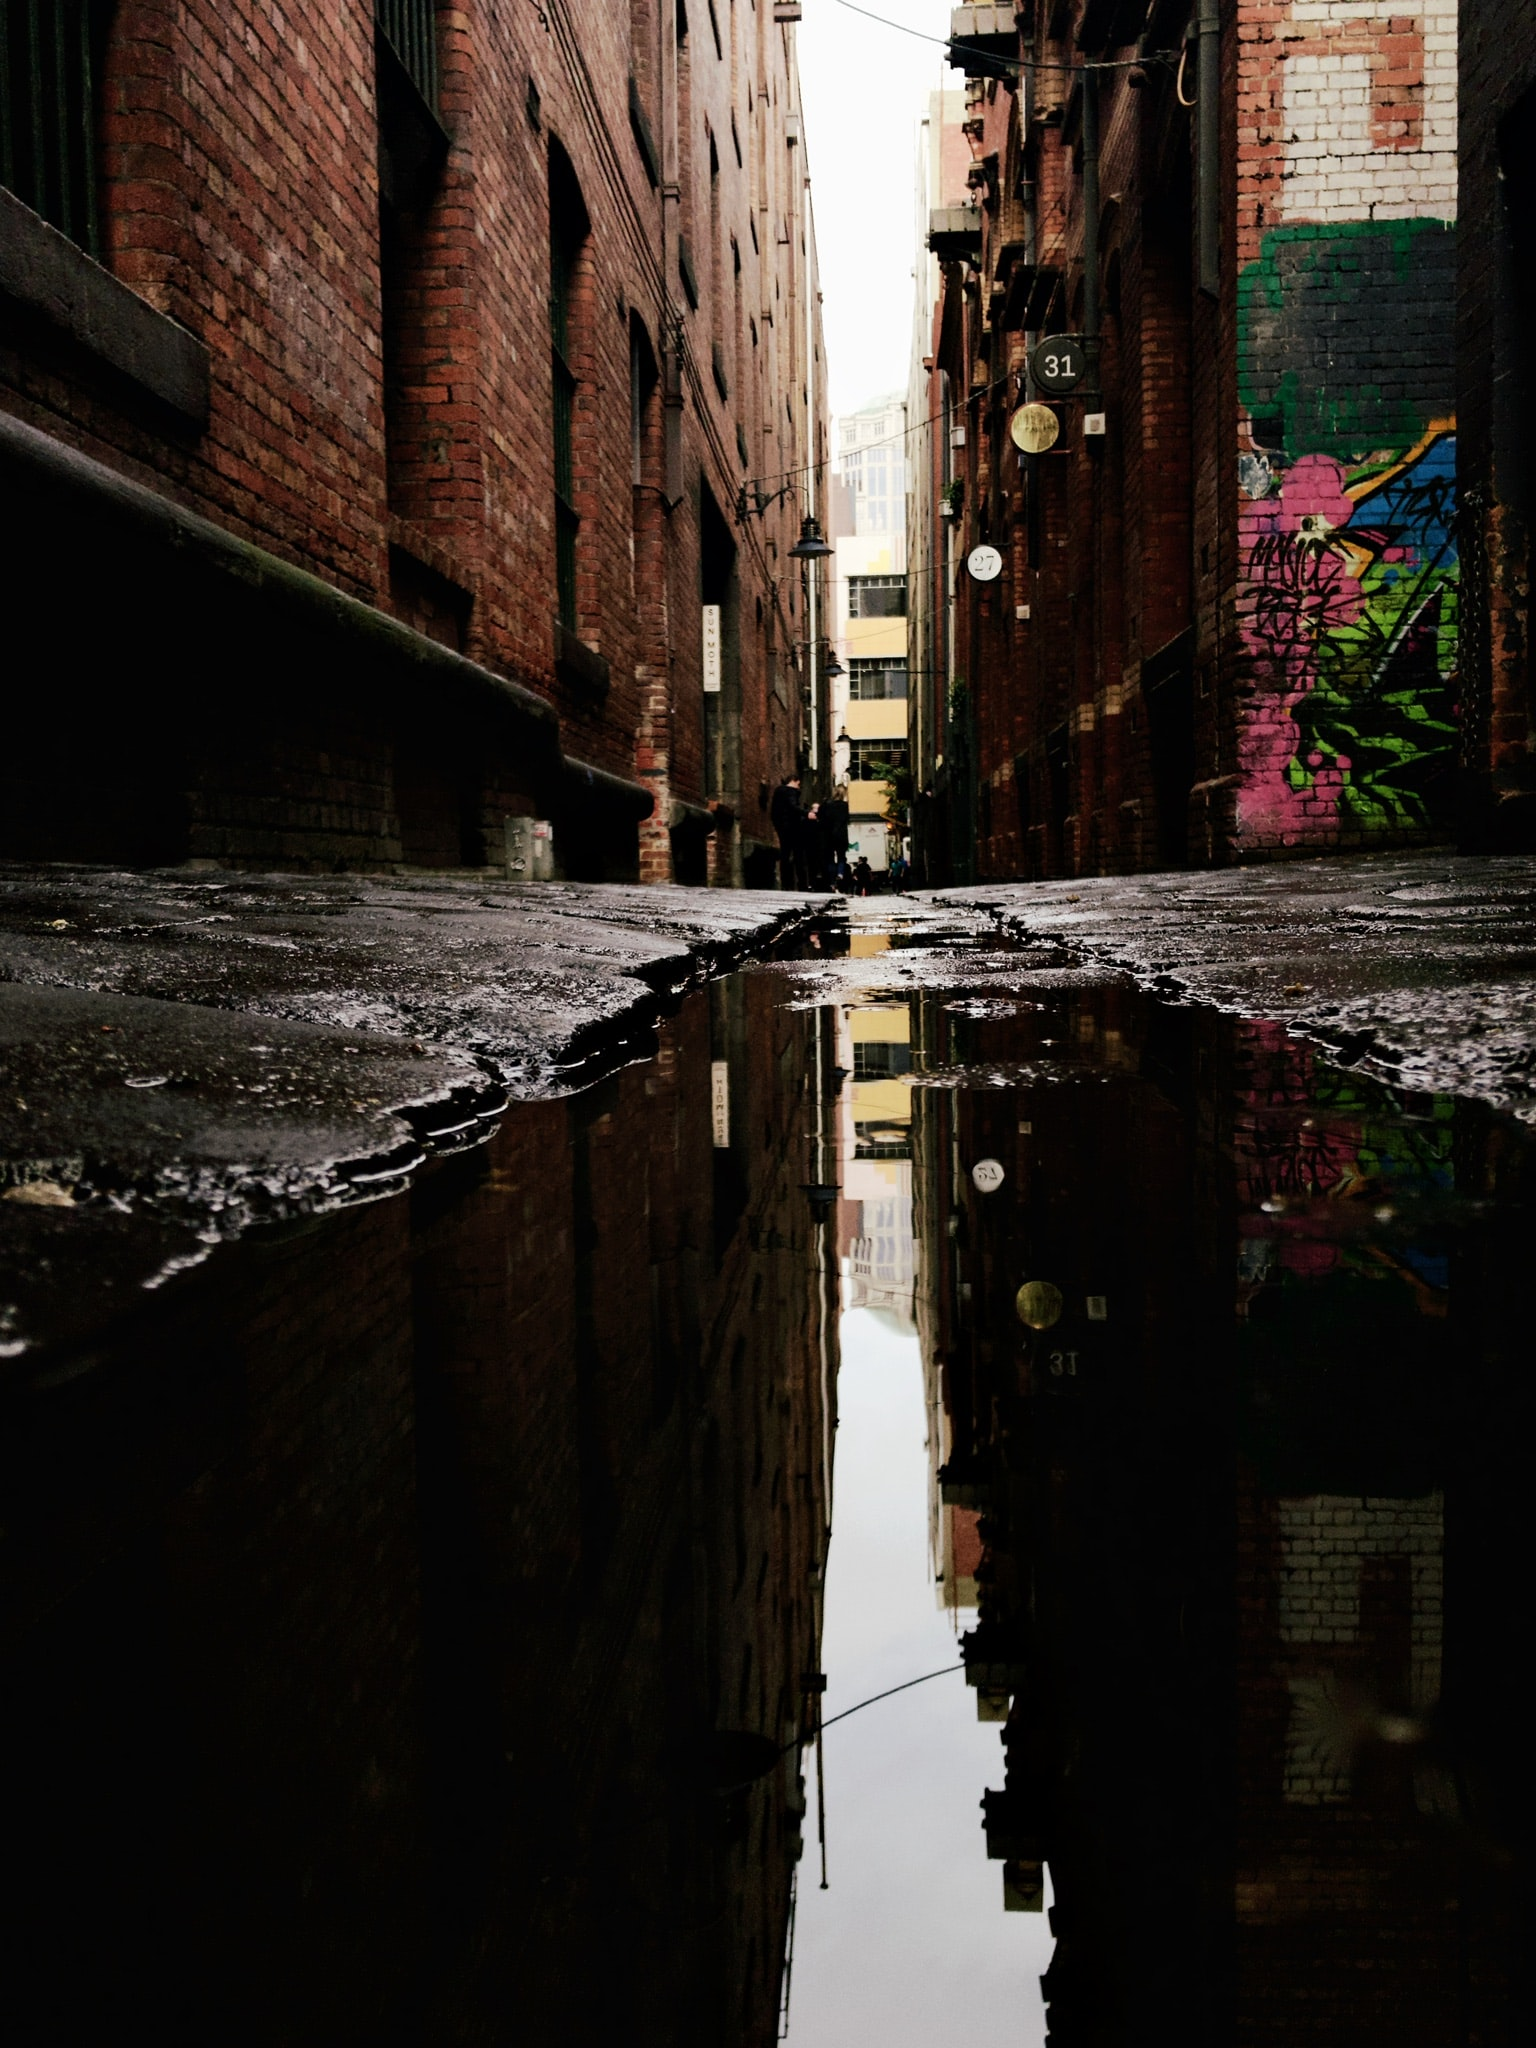 puddle on road